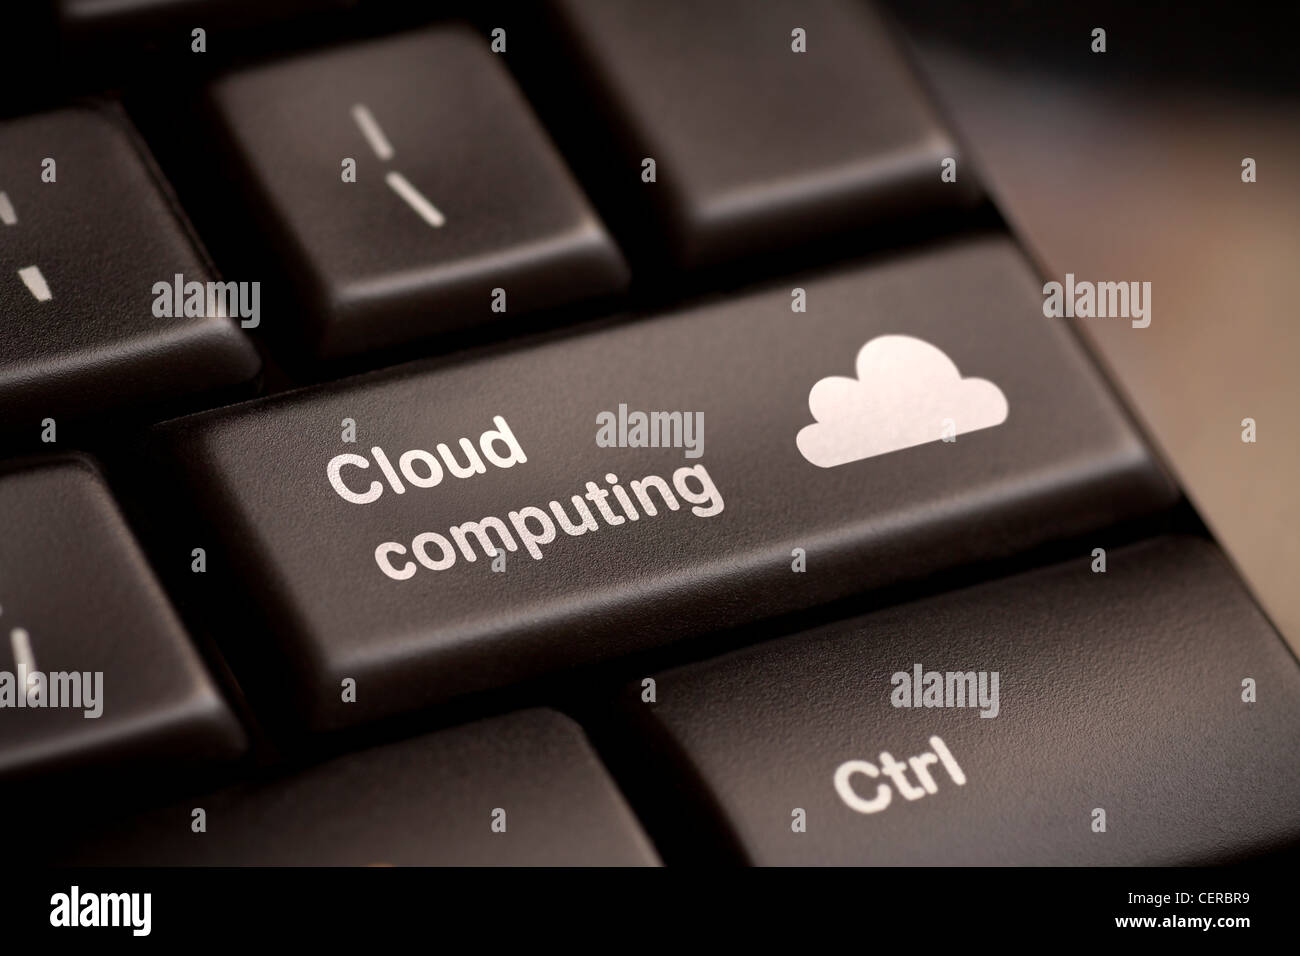 Le concept de cloud computing Cloud montrant sur l'icône de clé de l'ordinateur. Photo Stock